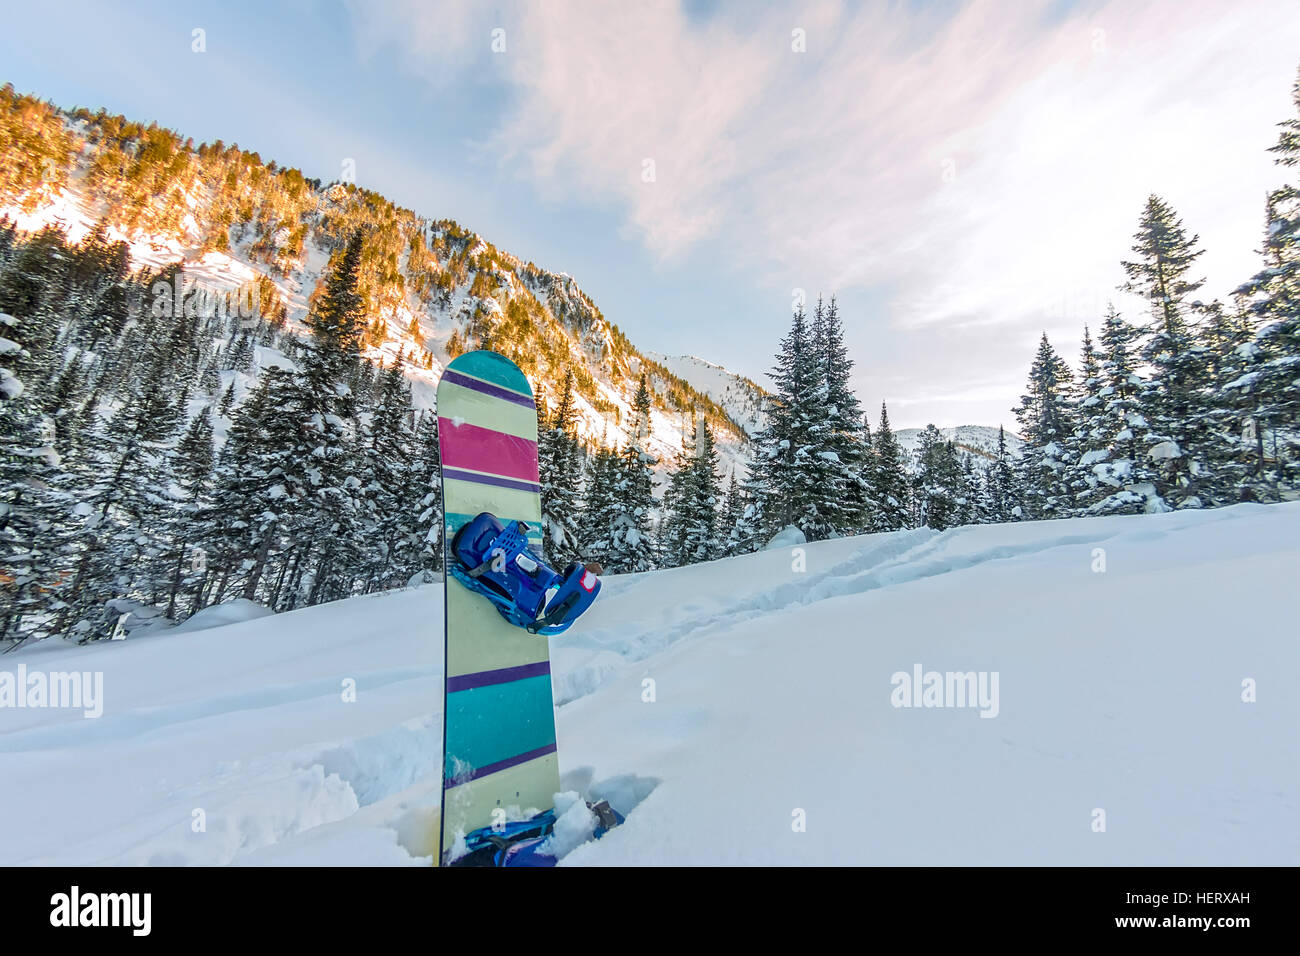 Snowboard standing in snow in mountains on road freeride - Stock Image